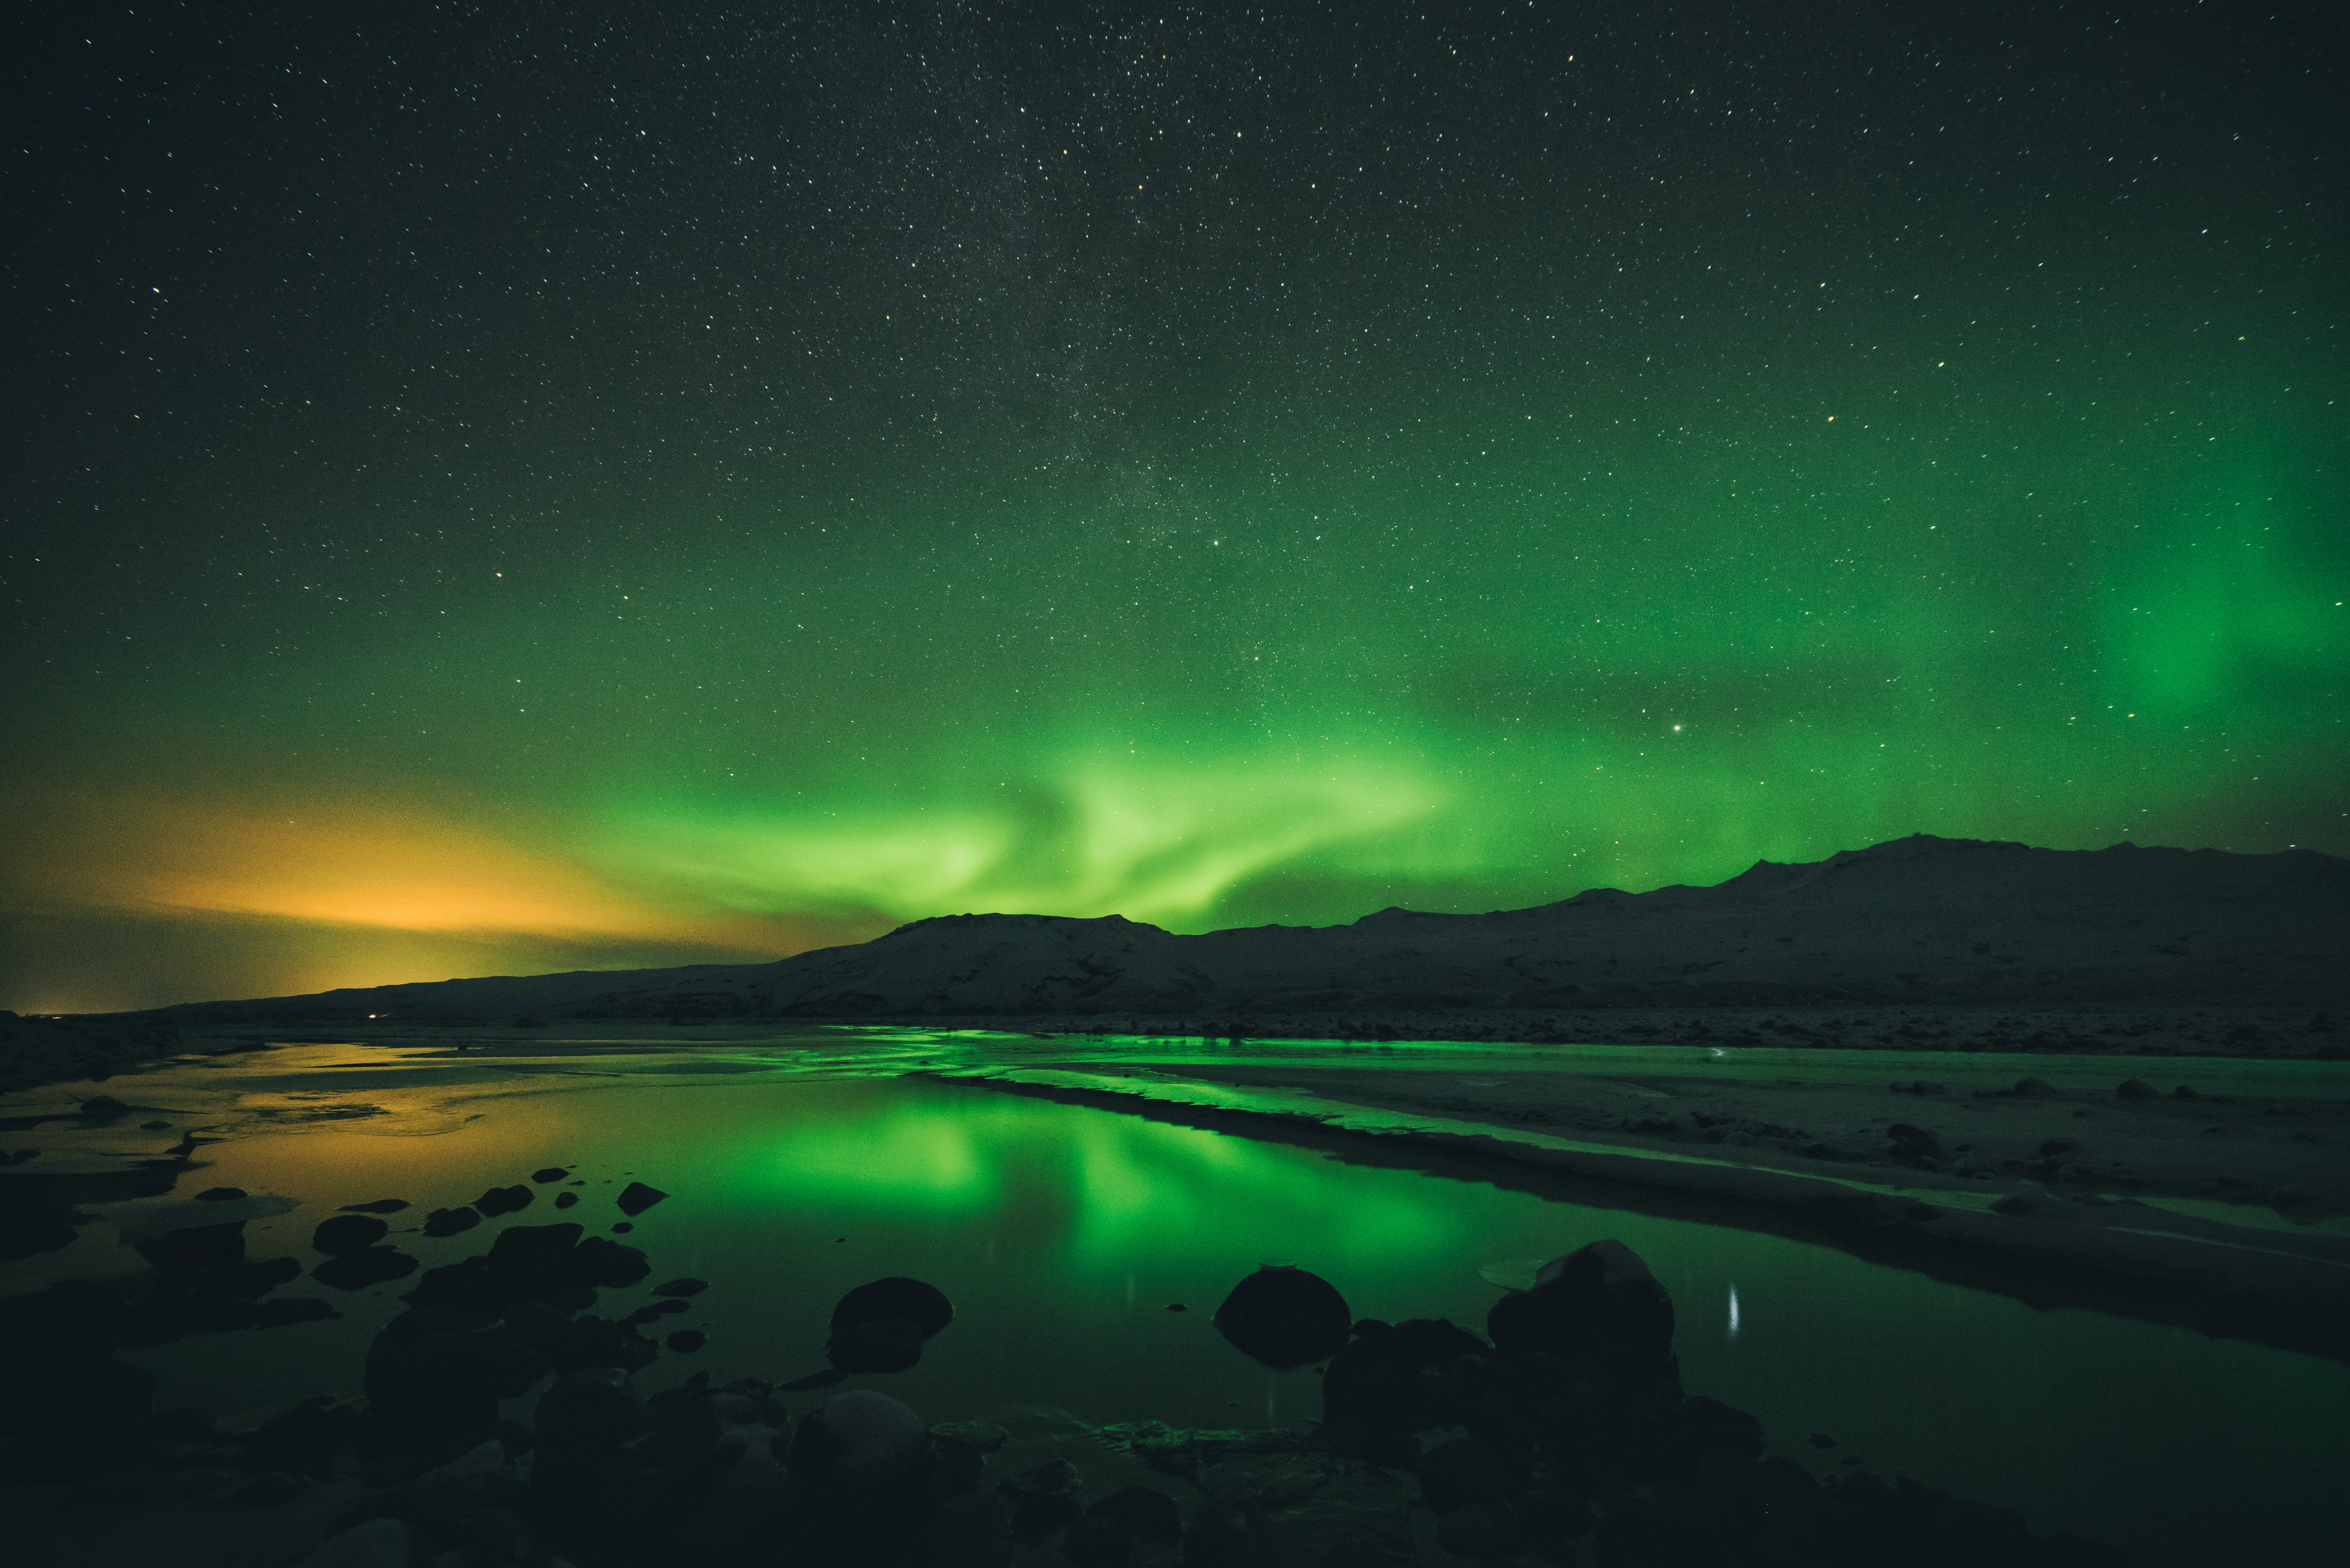 Colorful orange and green Northern Lights being reflected on the water surface in Thórsmörk.